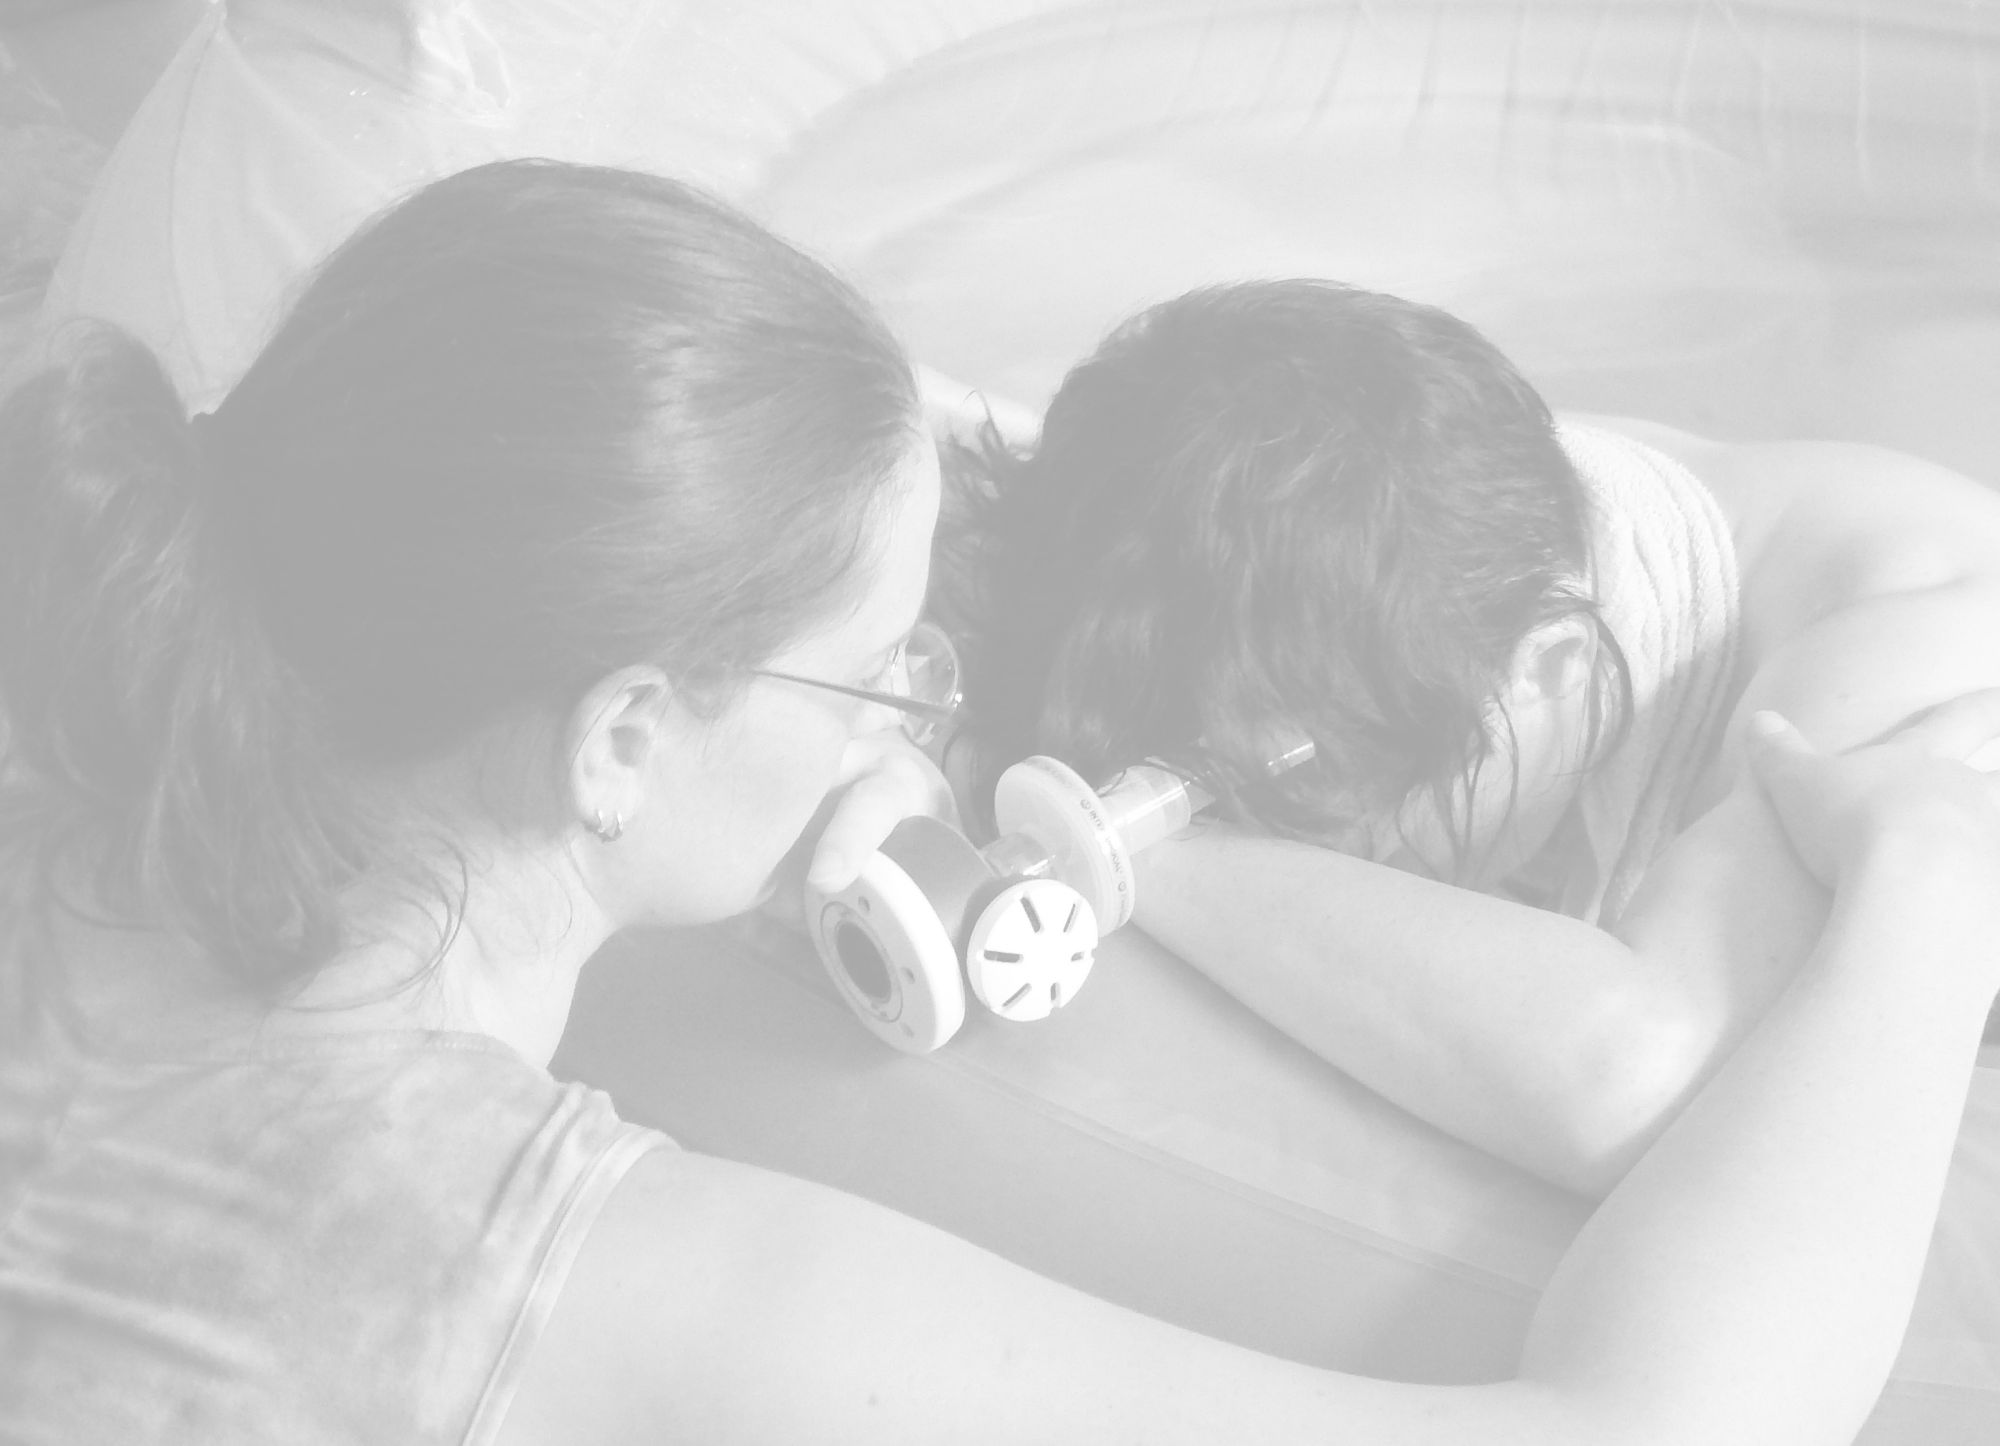 Black and white image of Caz comforting a labouring woman in a birth pool